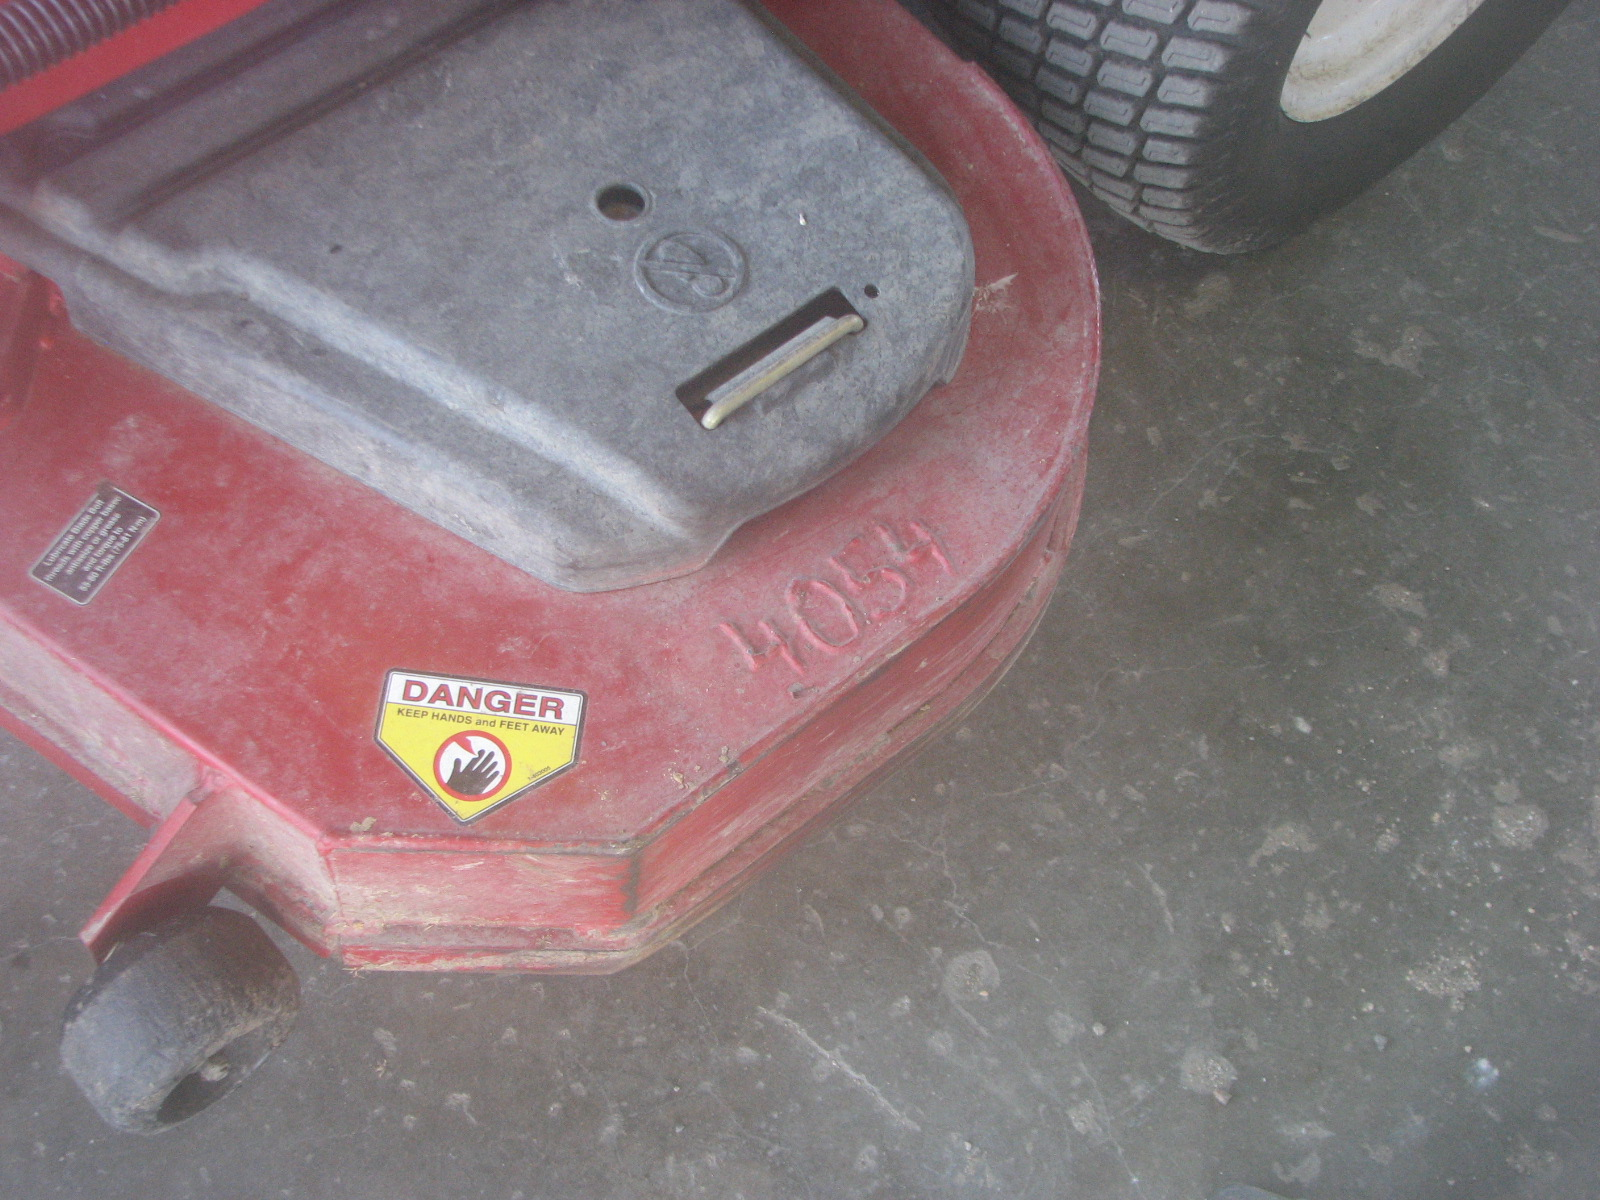 8d37a1072fd4d7 mower2 - Crime Stoppers of Southeast Texas